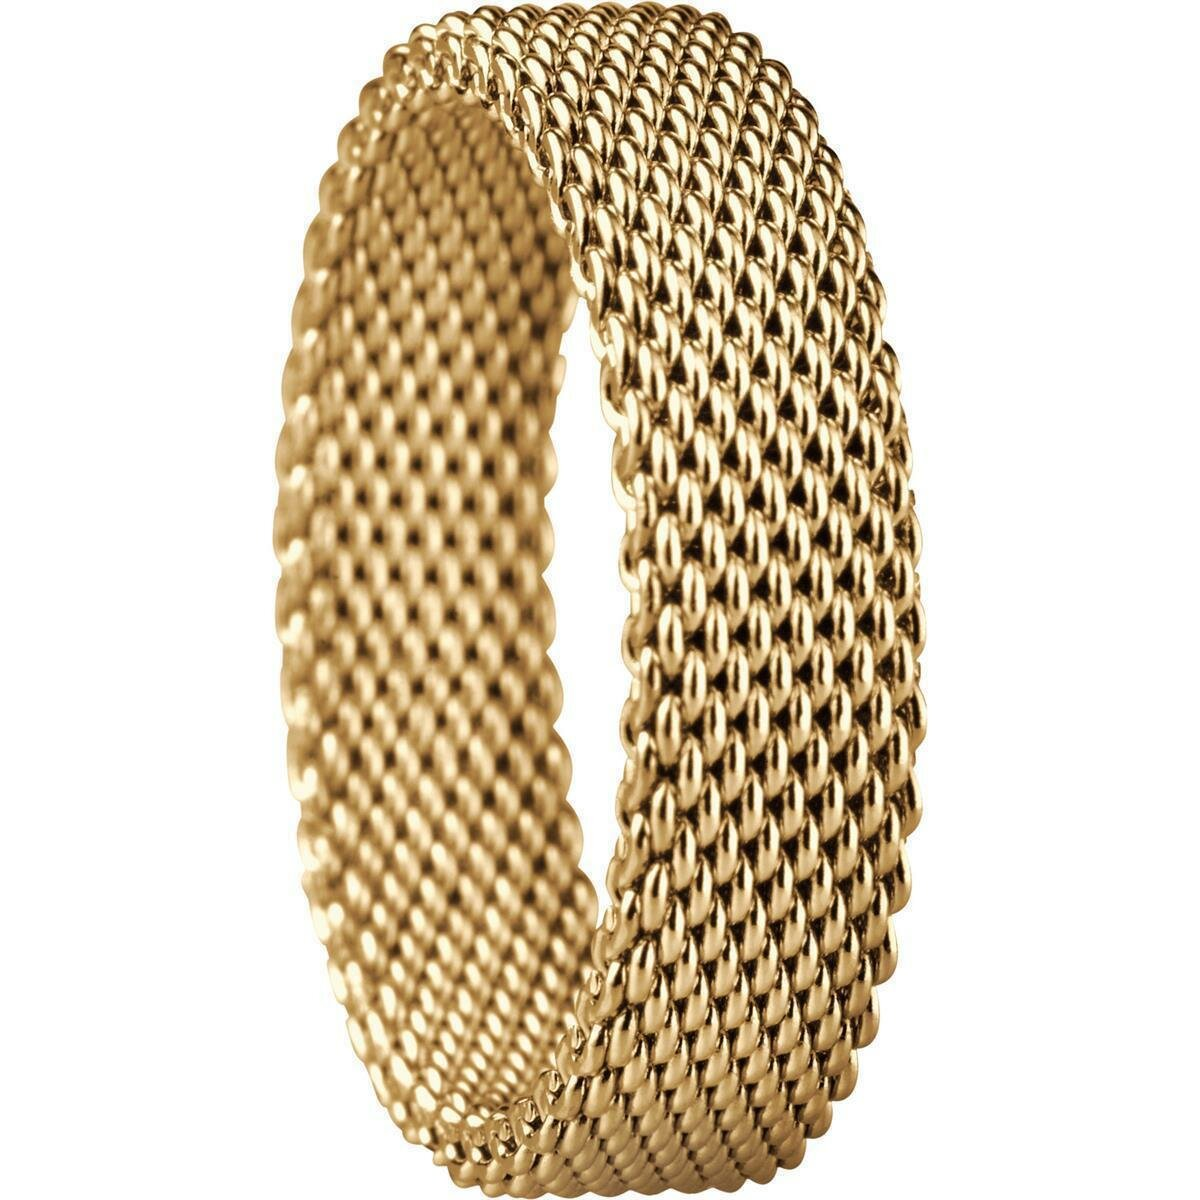 Bering Innenring 551-20-102 Milanaise gelbgold